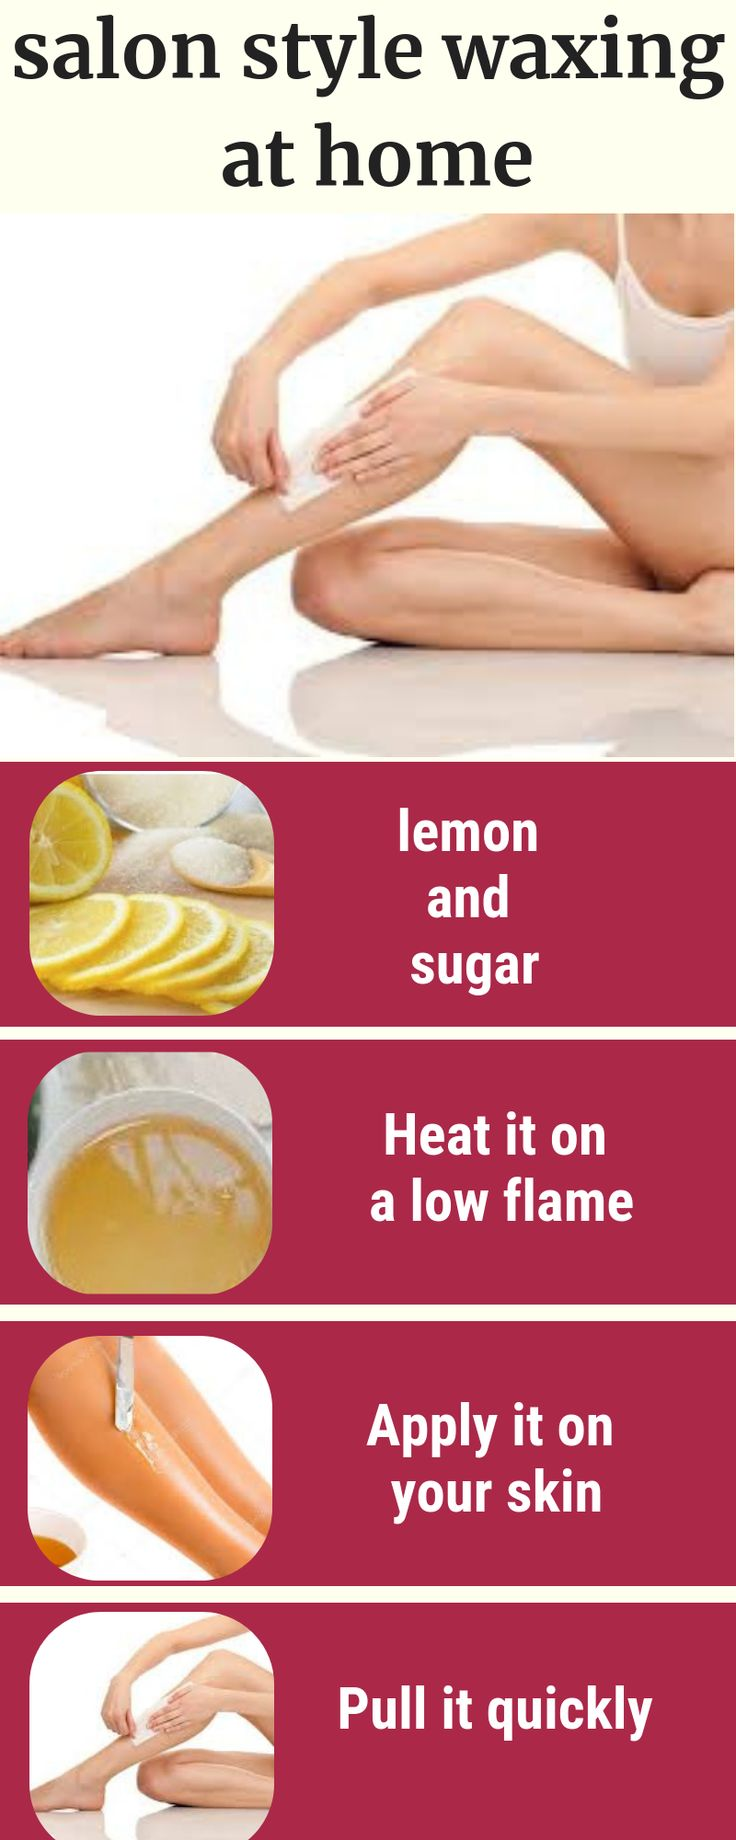 Diy recipes to do hands and legs waxing at home leg